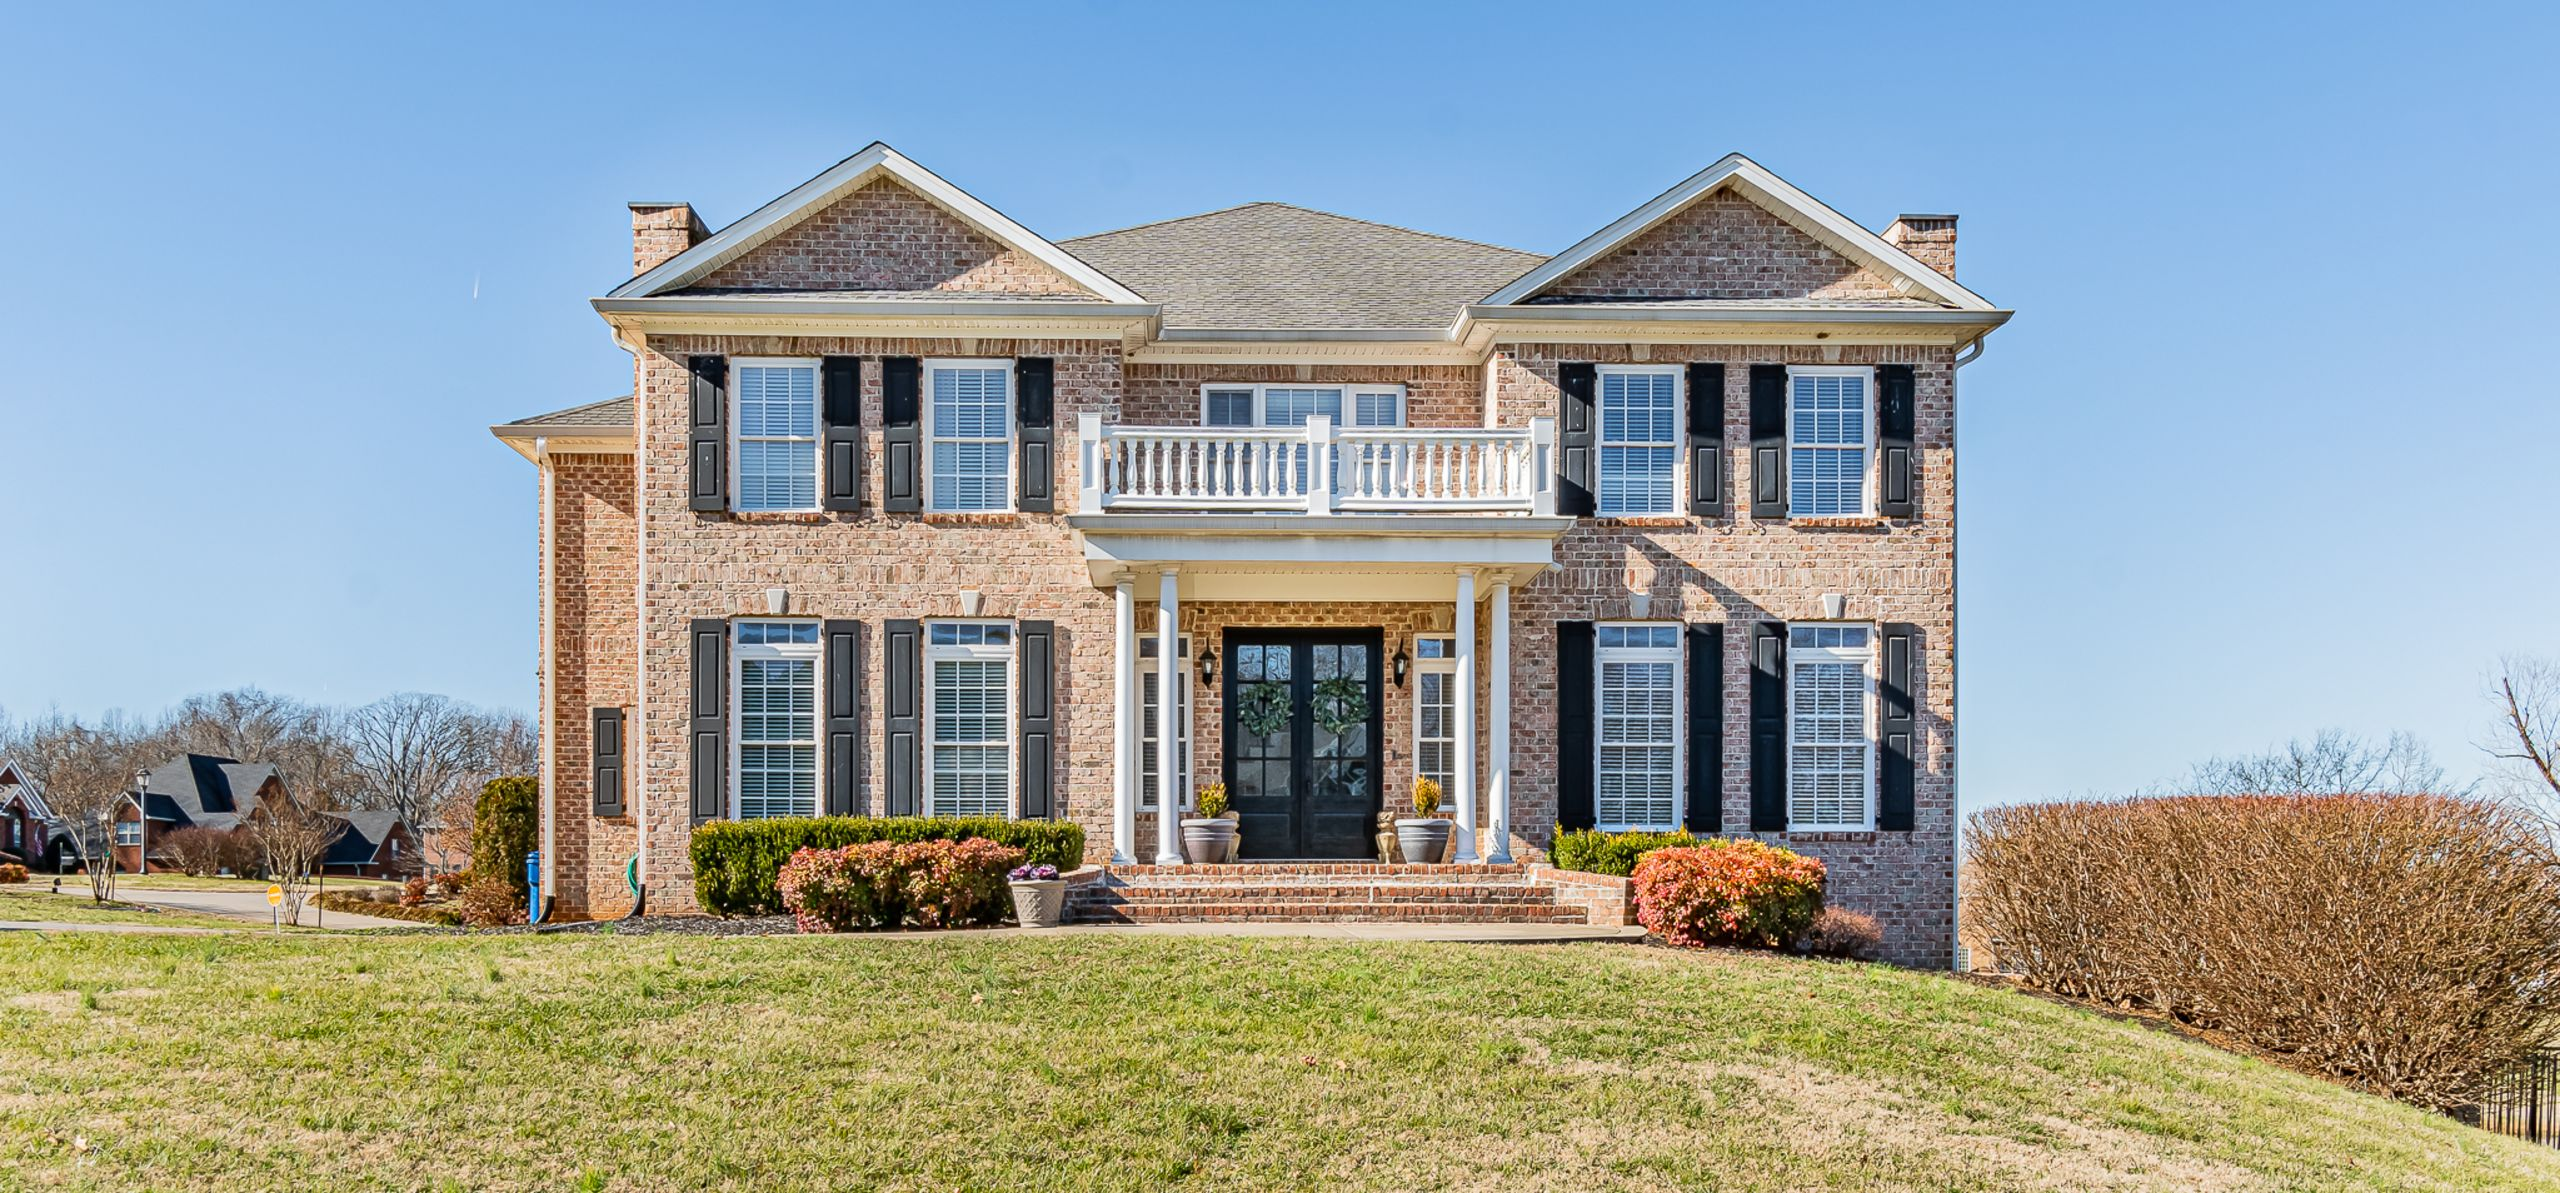 Immaculate Executive Homes